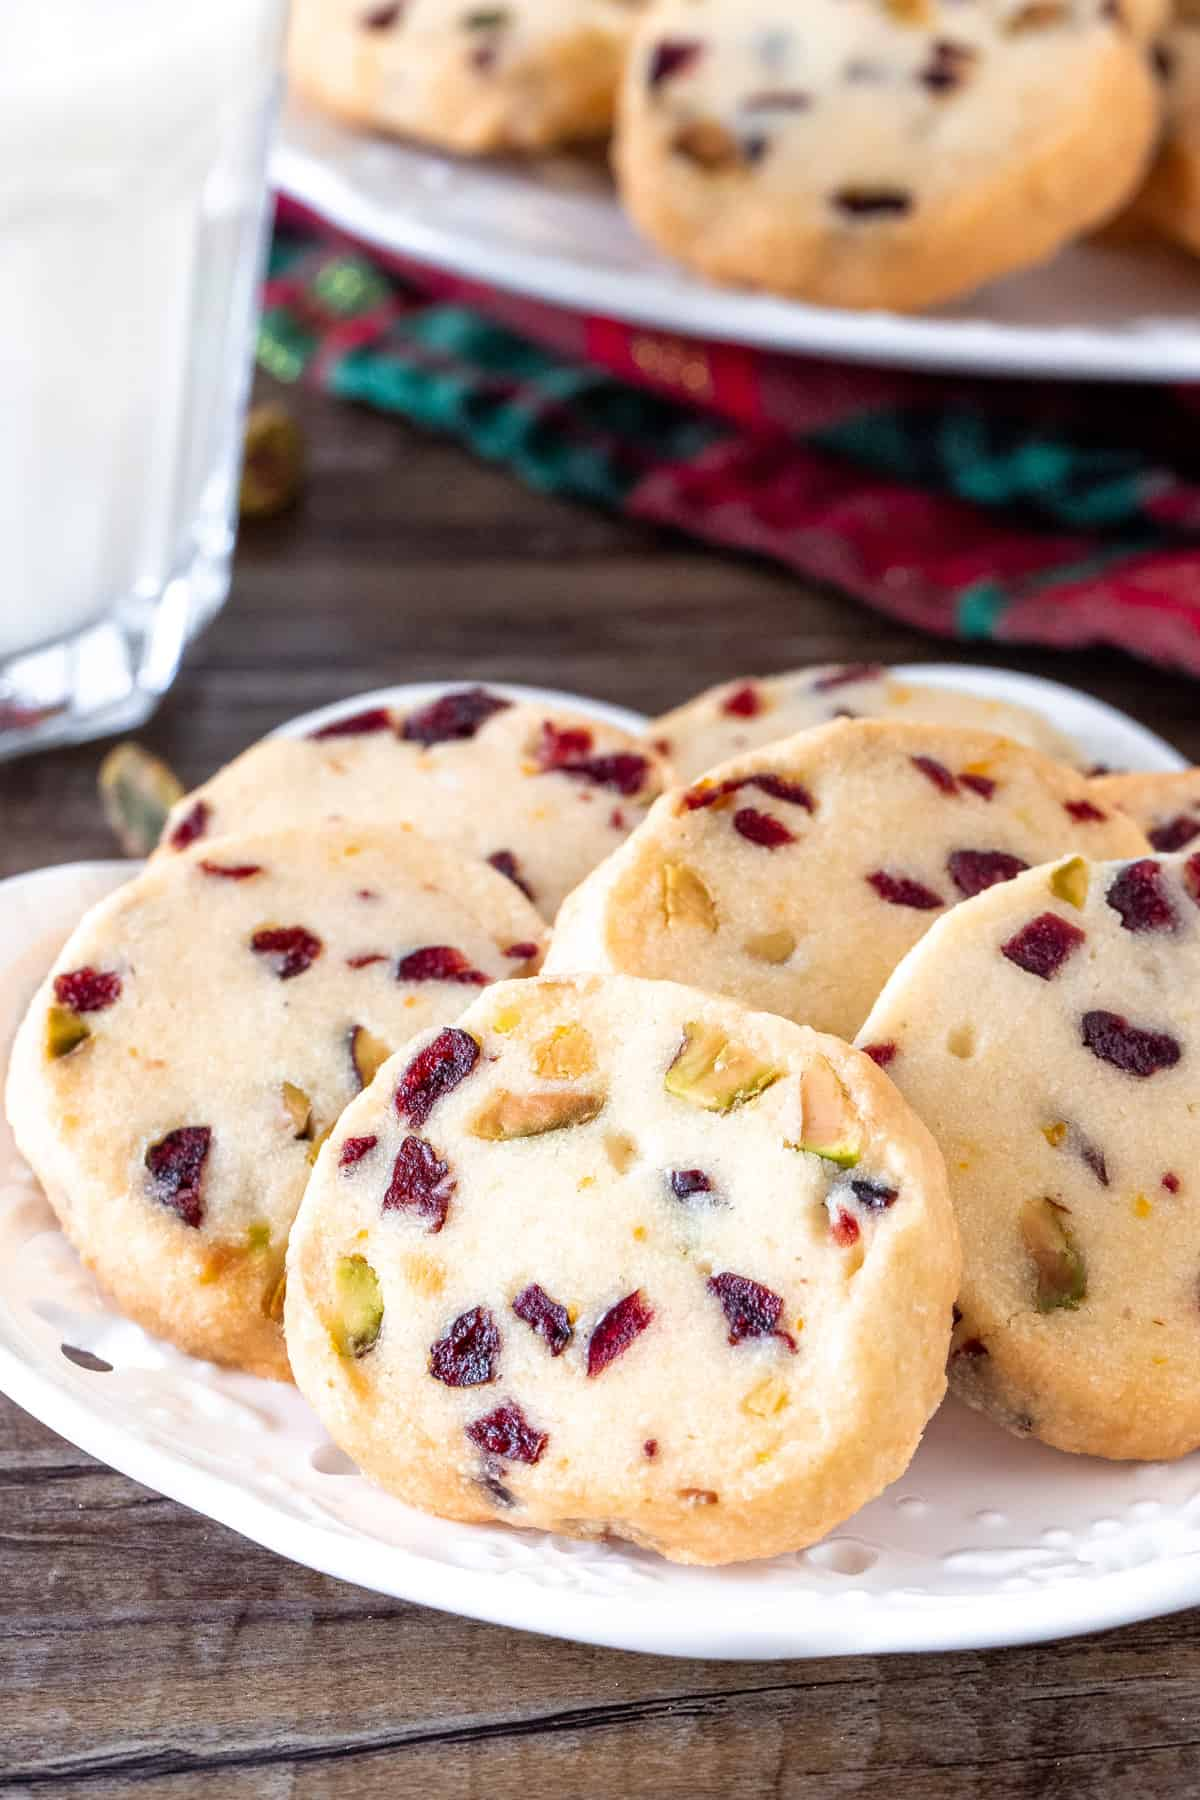 Cranberry orange shortbread on a plate with a glass of milk.